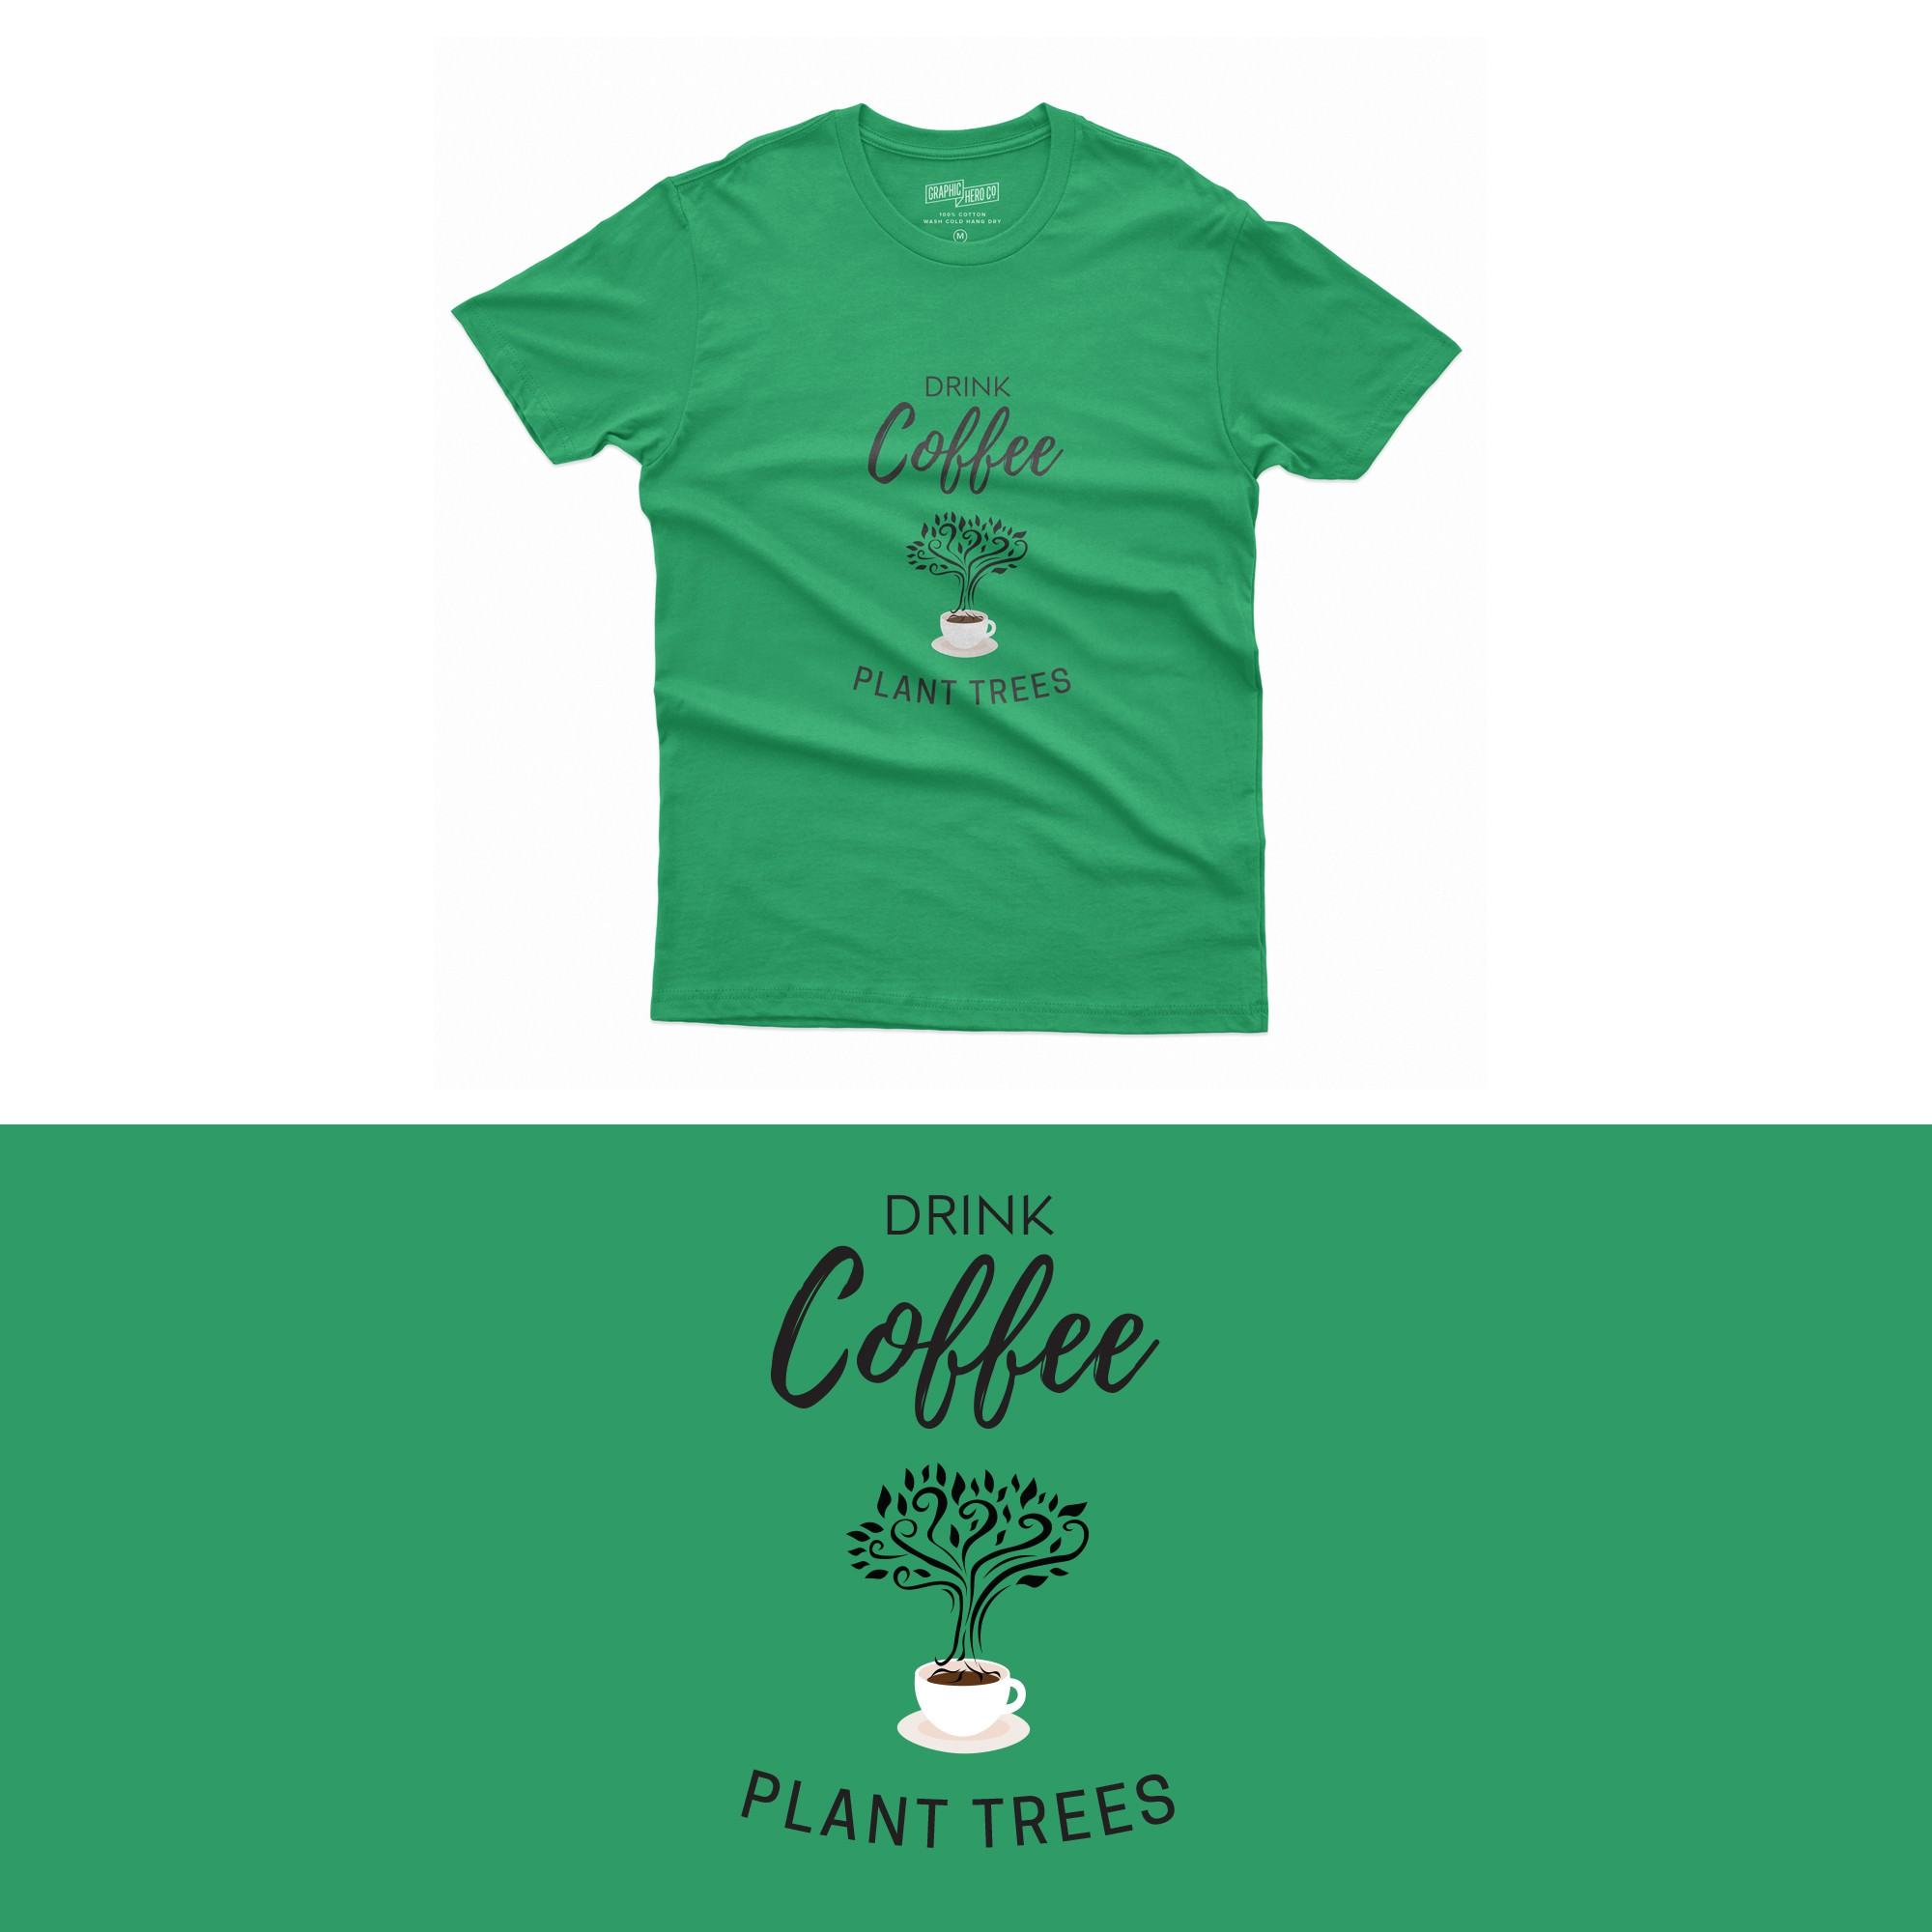 Merch and Apparel series for people who support organic and plastic free products and love coffee